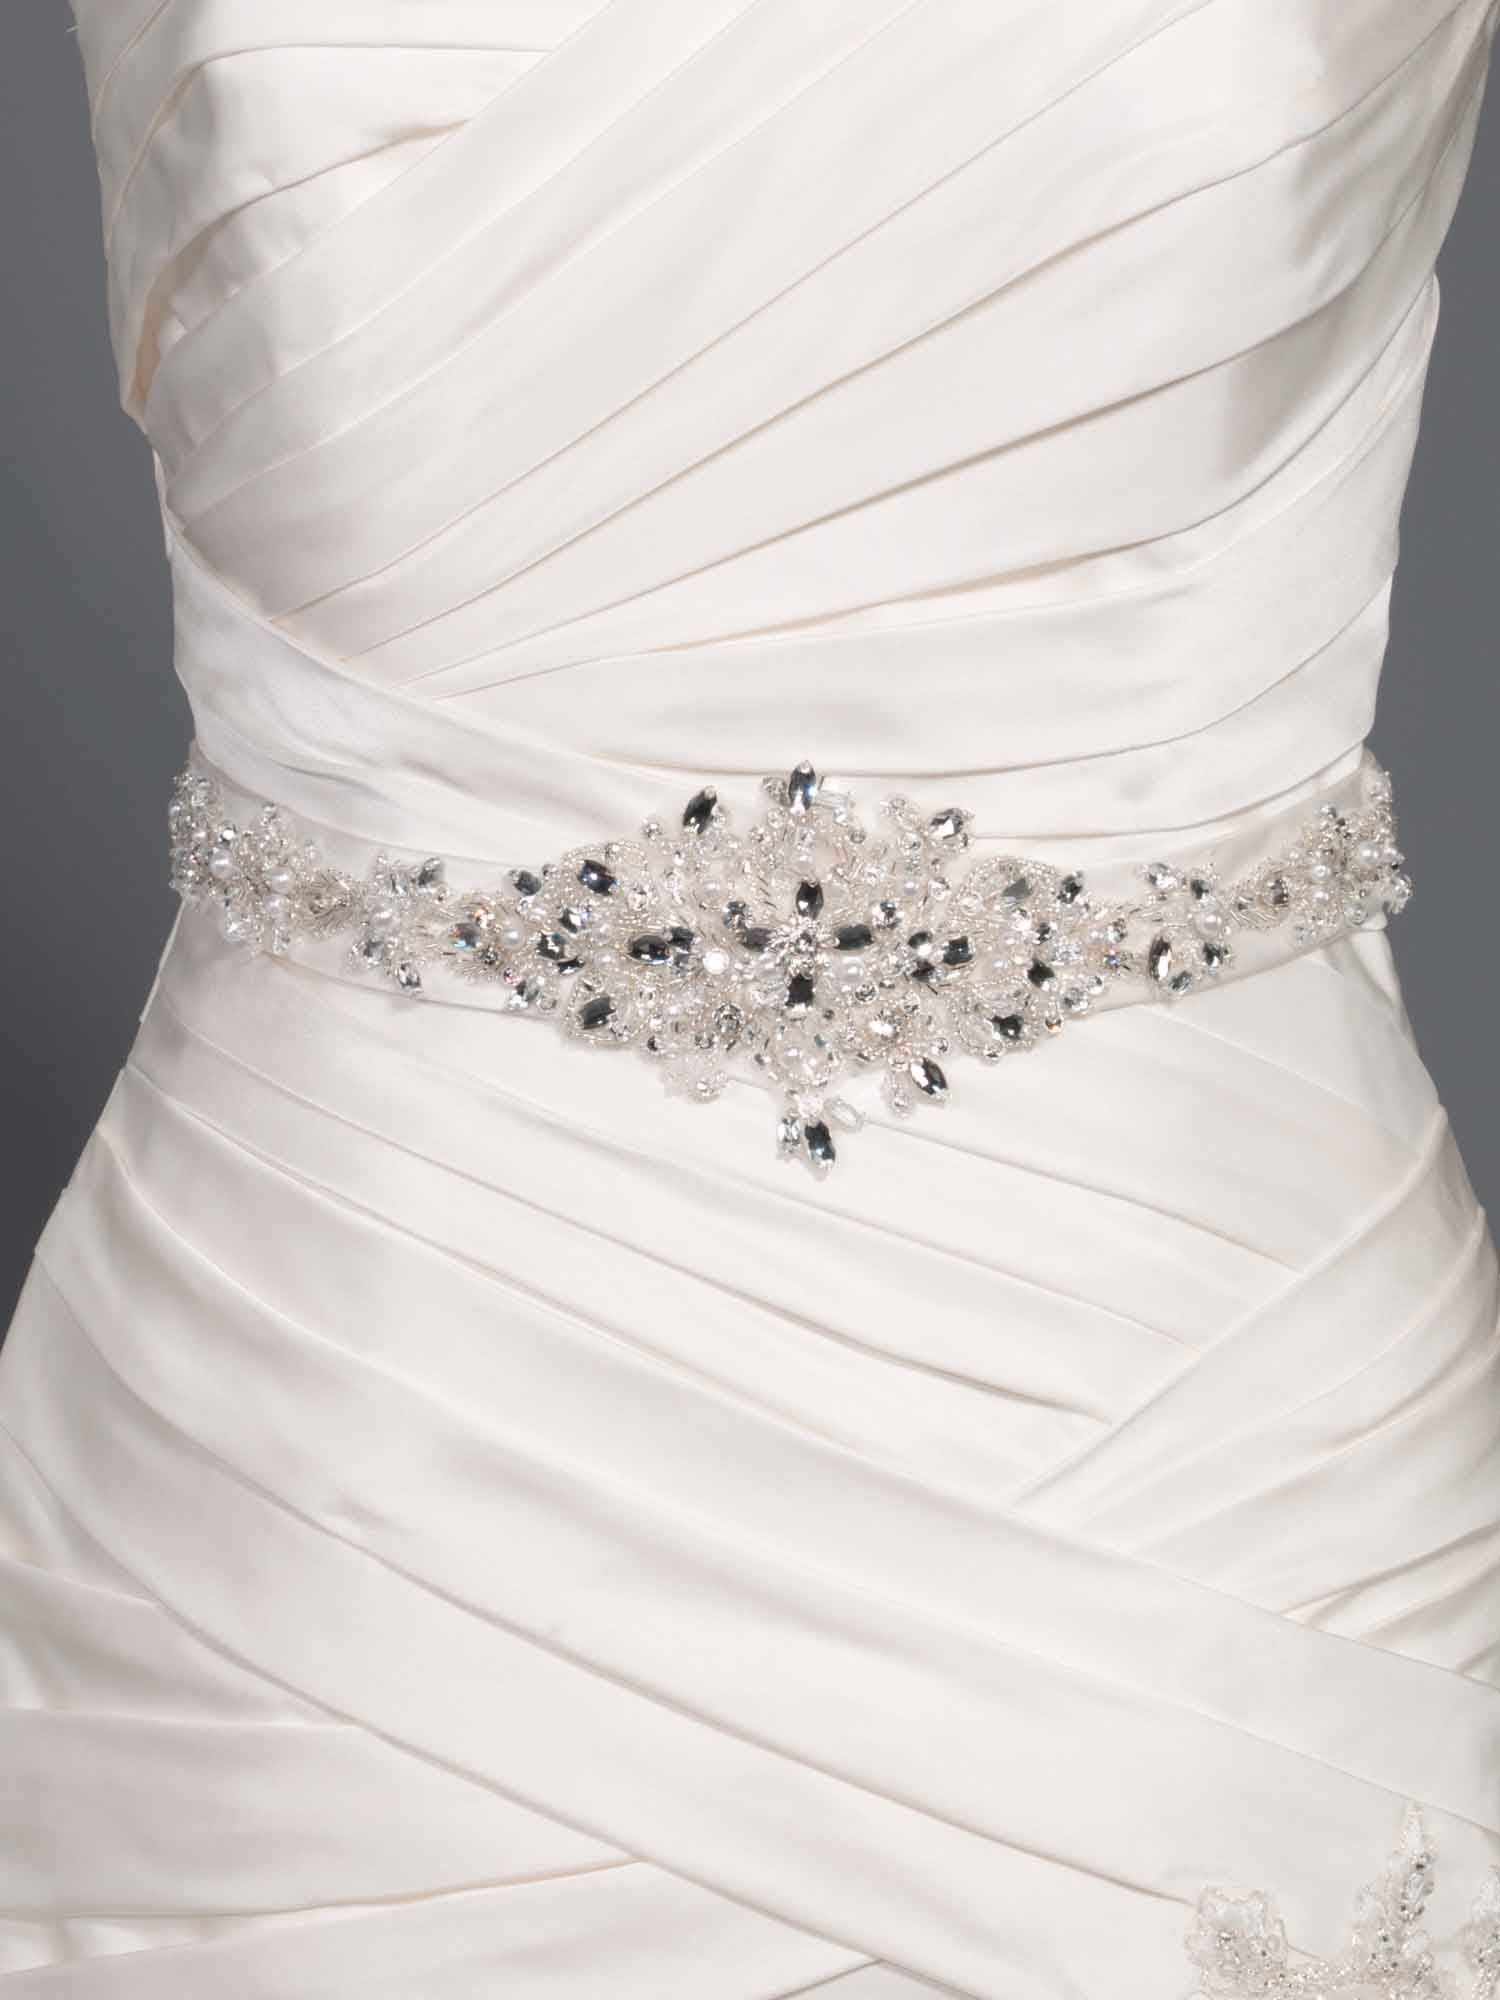 So lovely fairytale wedding pinterest beads wedding dress